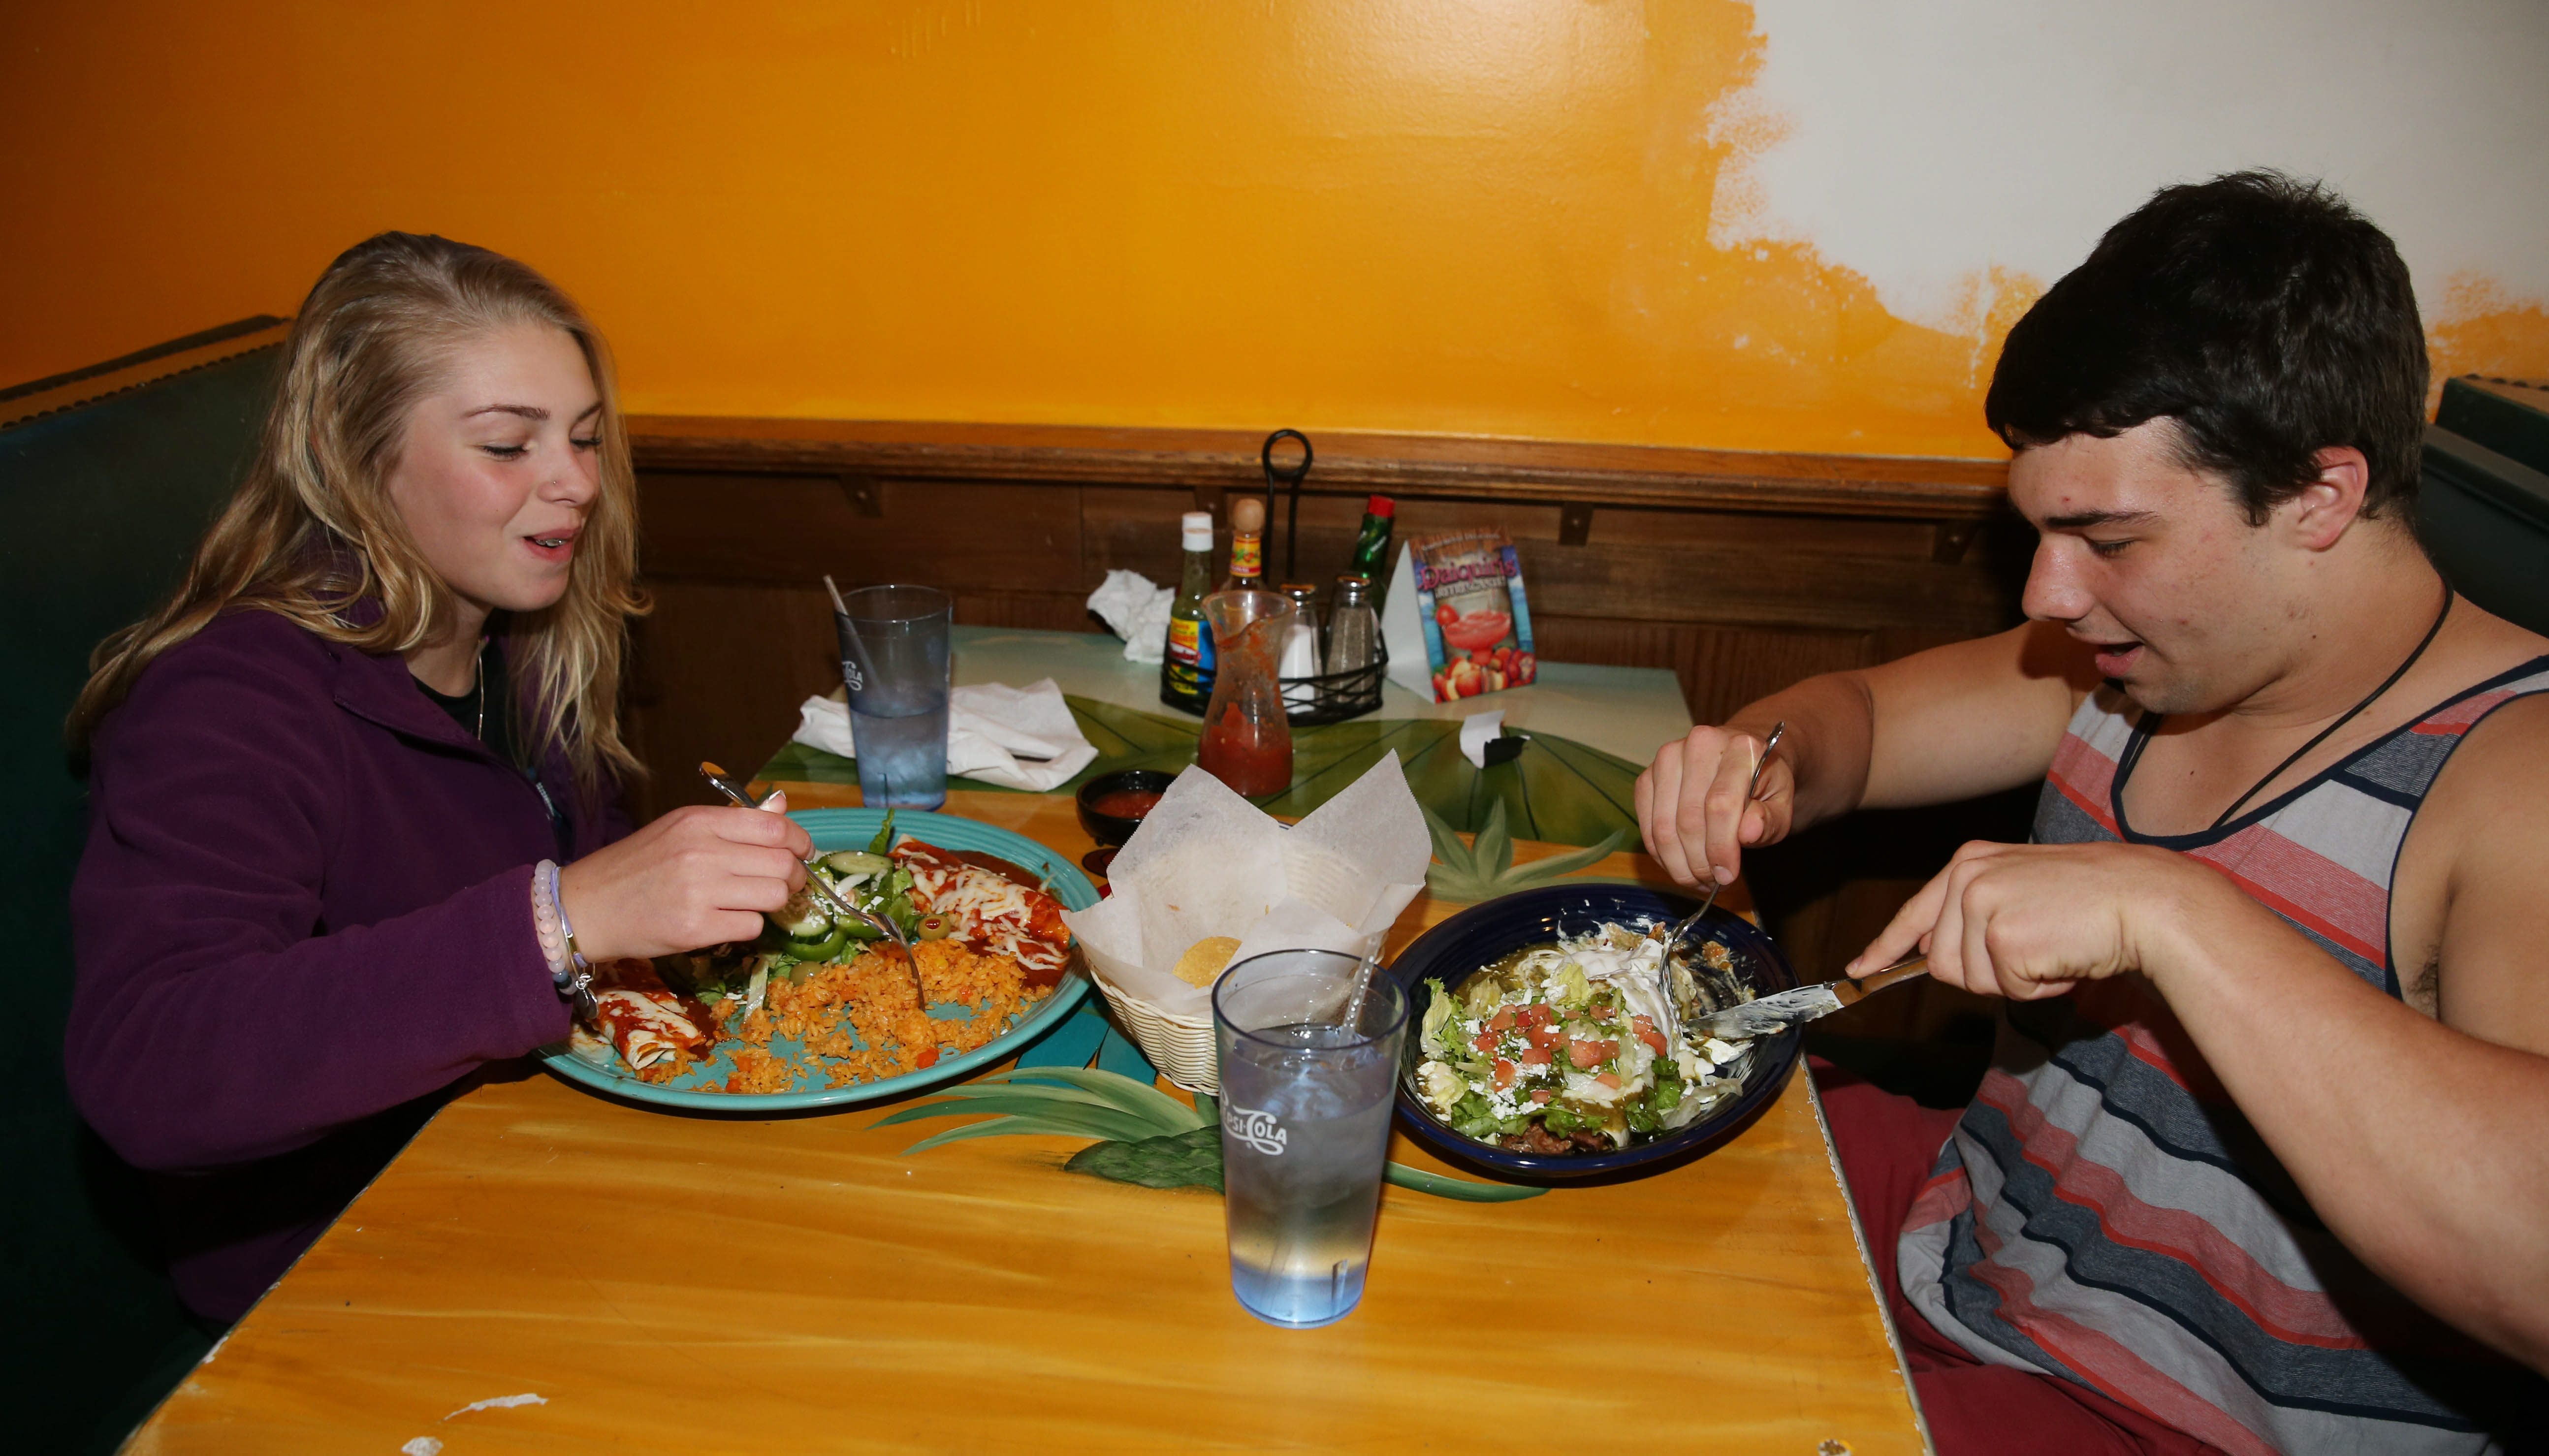 Victoria Gullo, left, and Aaron Harm of West Seneca, have dinner in the new Don Juan Mexican Bar & Grill in West Seneca. (Sharon Cantillon/Buffalo News)